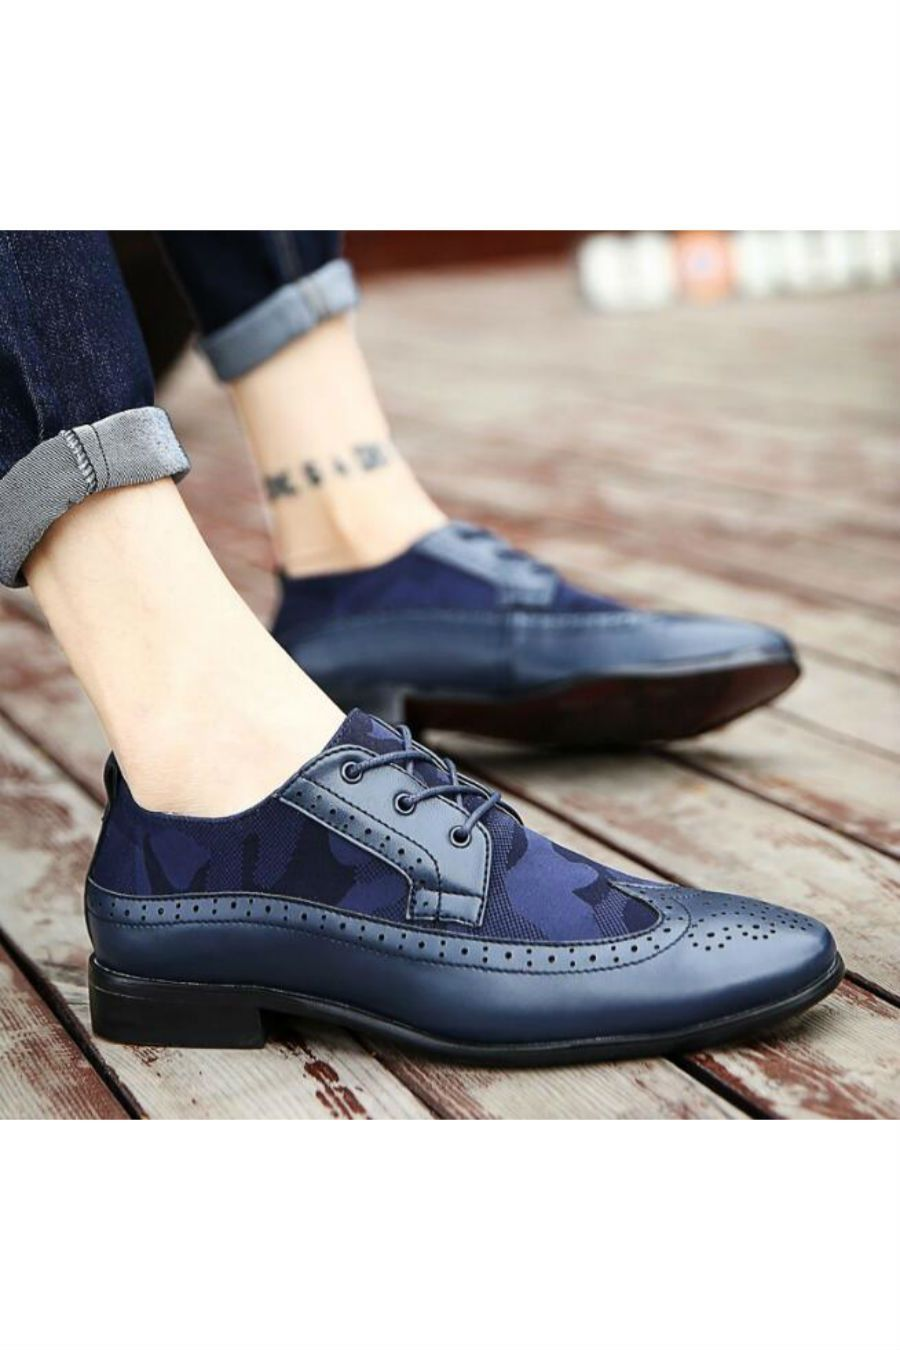 e5cf37e692c Long Knee Length Boots. Camo Printed Brogue Shoes In Navy. Womens Flat  Shoes Ladies Dolcis Lace Up Smart Office Vintage ...